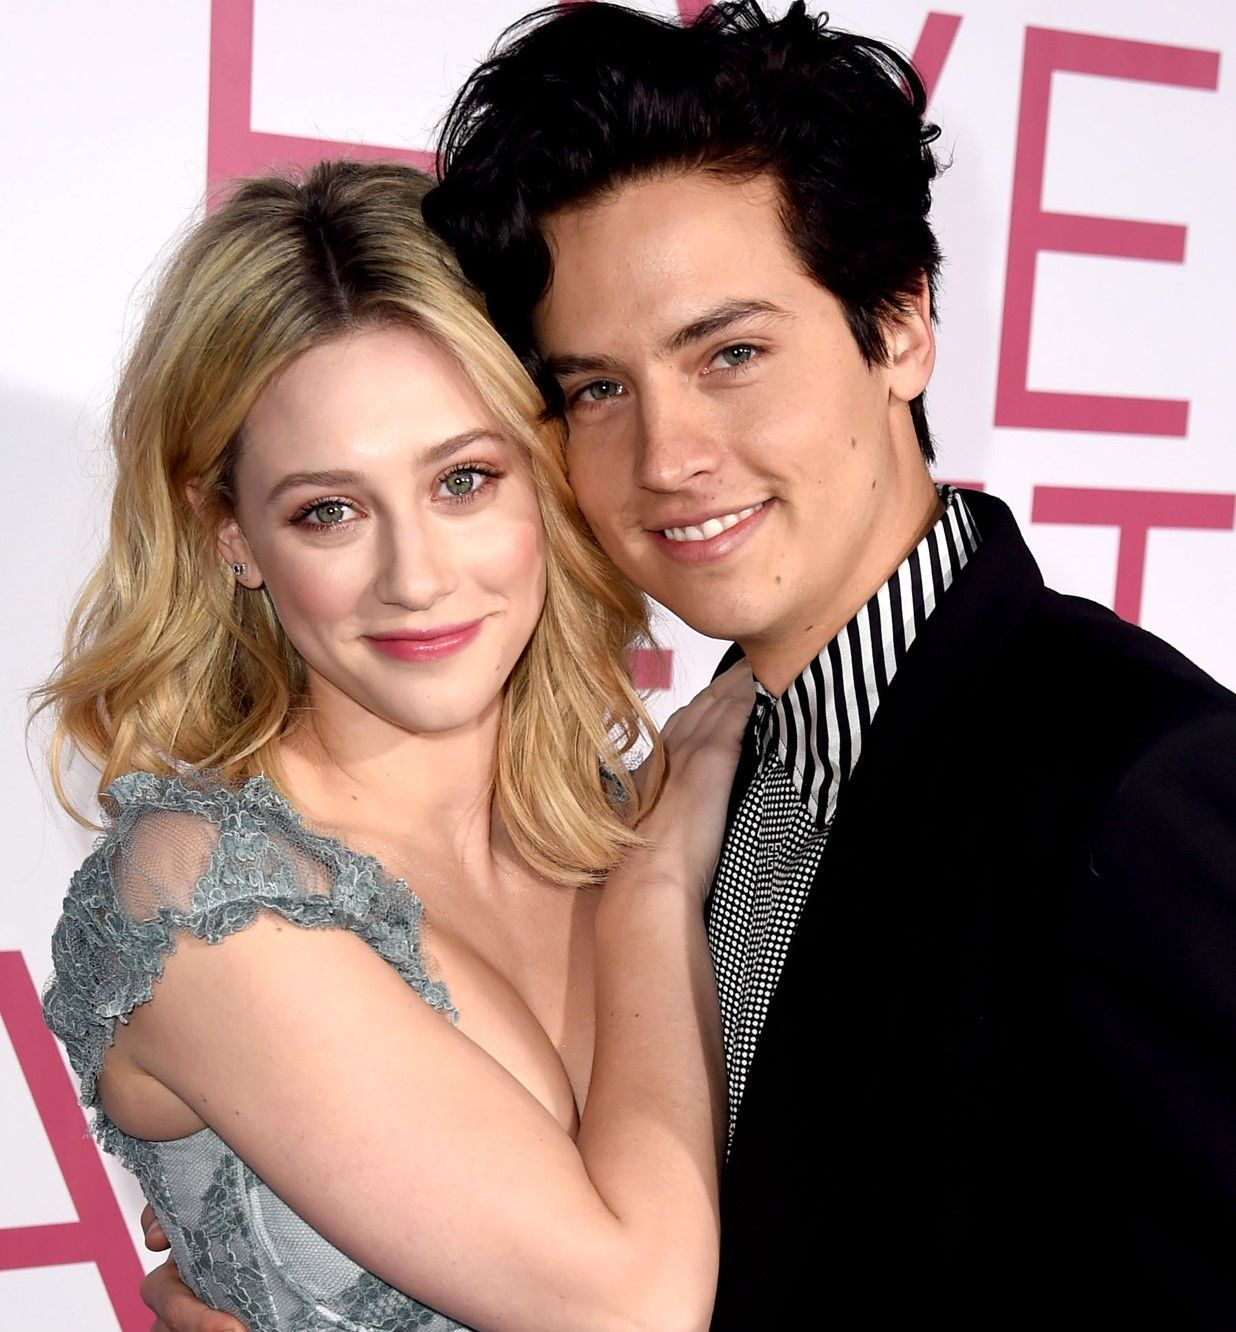 Riverdale Stars Cole Sprouse And Lili Reinhart Split After 2